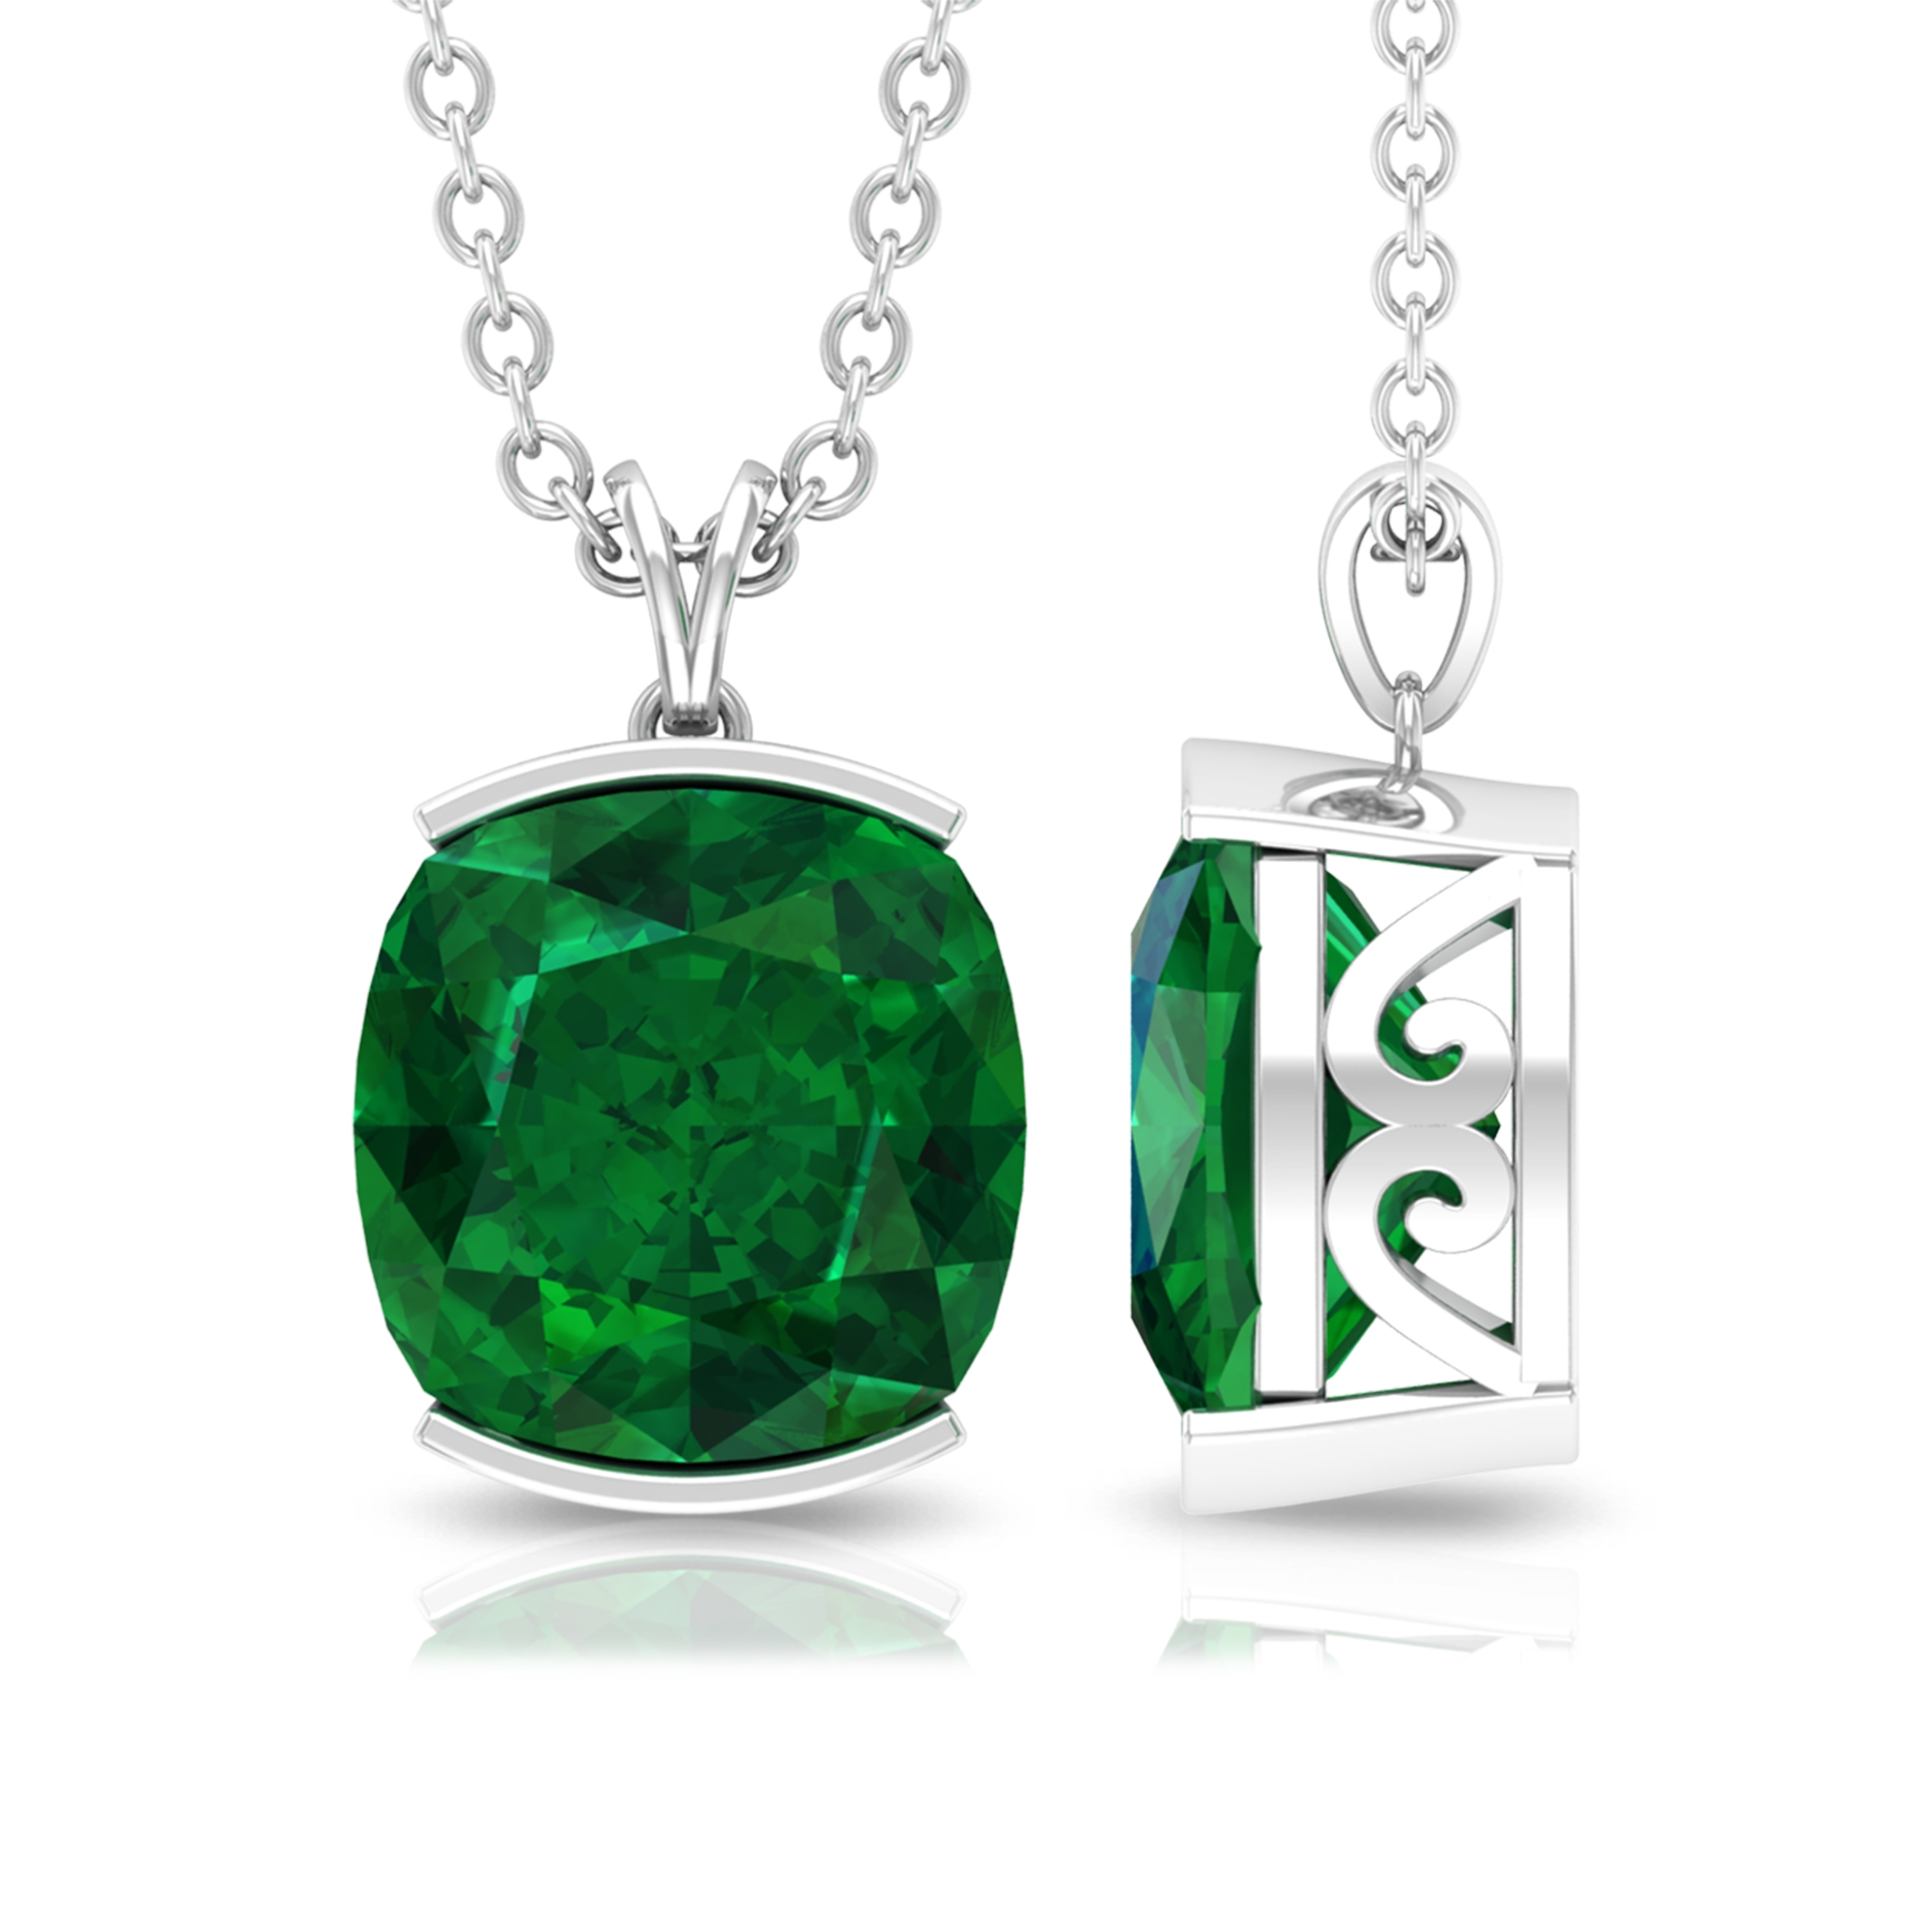 8 MM Cushion Cut Emerald Solitaire Simple Pendant in Half Bezel Setting with Rabbit Ear Bail